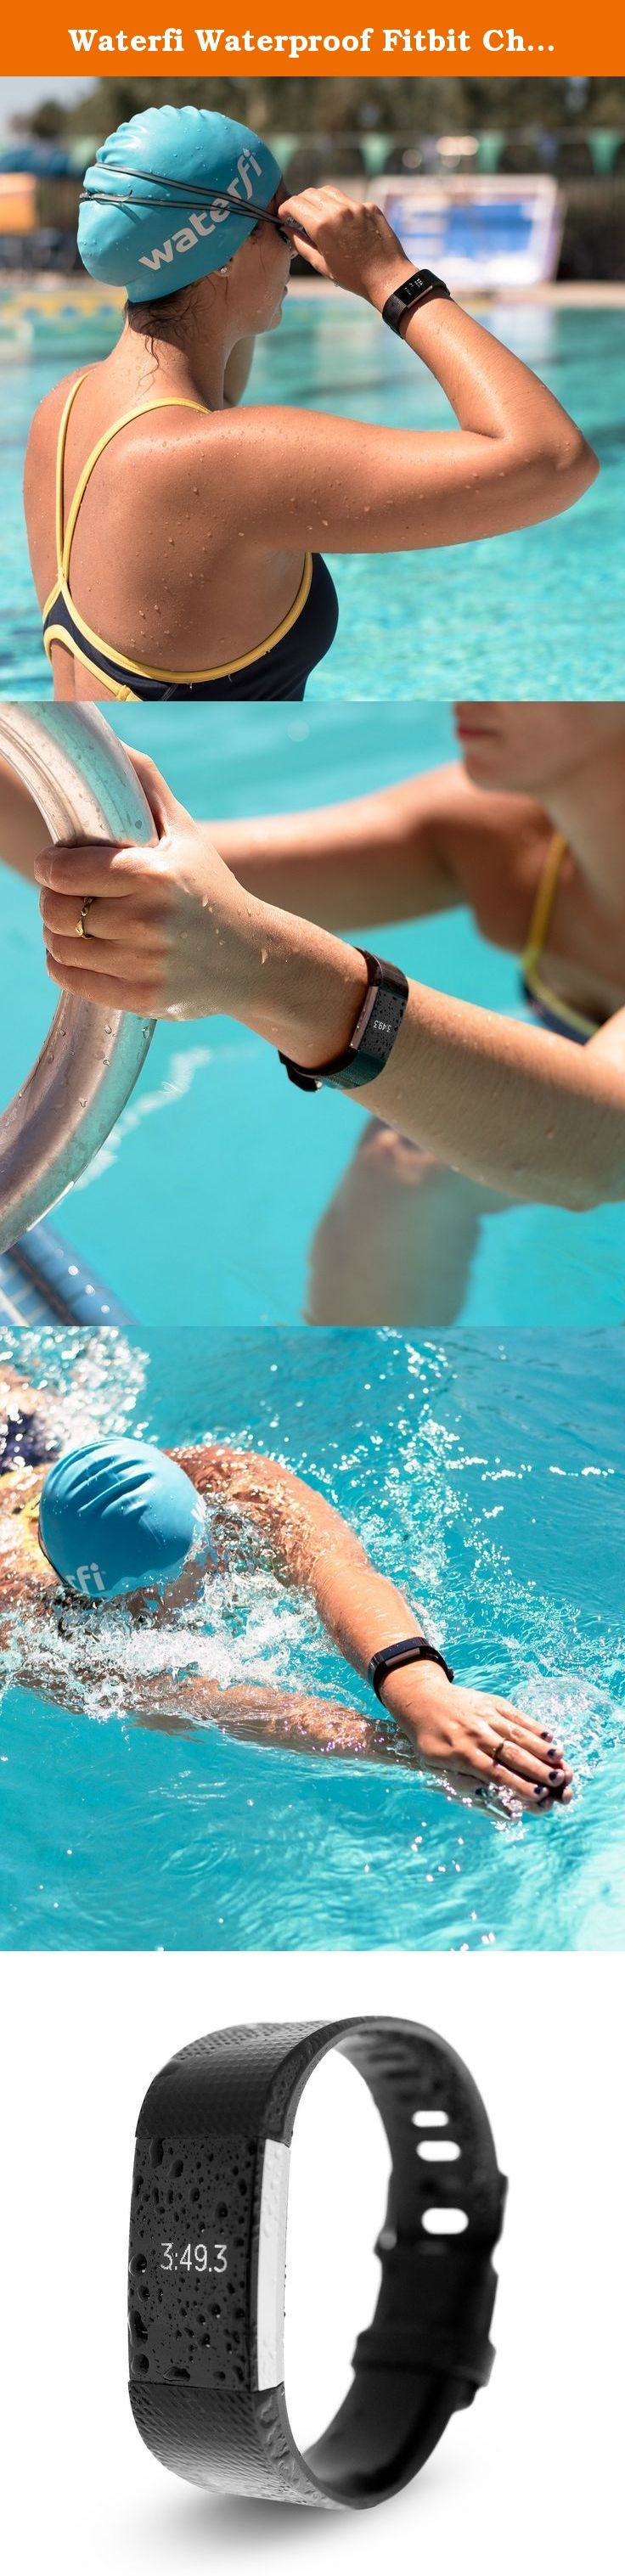 Waterfi Waterproof Fitbit Charge 2 - Silver/Black - Activity Tracker with Heart Rate Monitor (Large). WATERFI PLATINUMX WATERPROOFING Completely waterproof down to 30 feet underwater indefinitely, the Waterproofed Fitbit Charge 2 has been enhanced on the inside with our durable PlatinumX waterproofing process. Swim, surf and by all means sweat without any worries that your Waterproof Fitbit Charge 2 can keep up. Learn more about Our PlatinumX Waterproofing Process. SEE AND BE SEEN A…